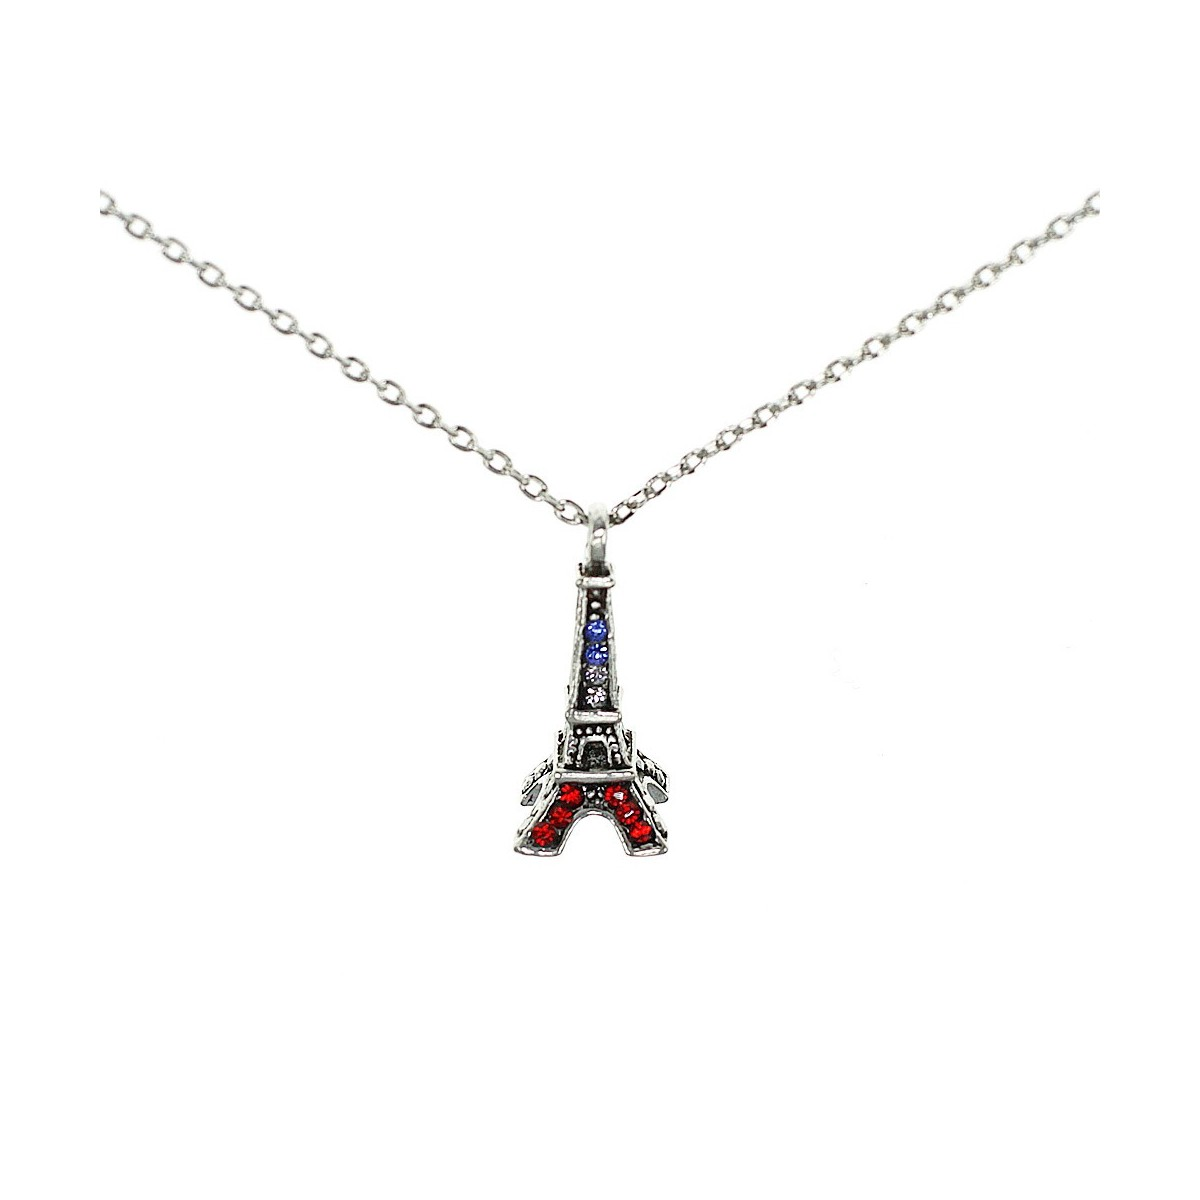 Collier Tour Eiffel tricolore Belle Paris made with crystal from Swarovksi